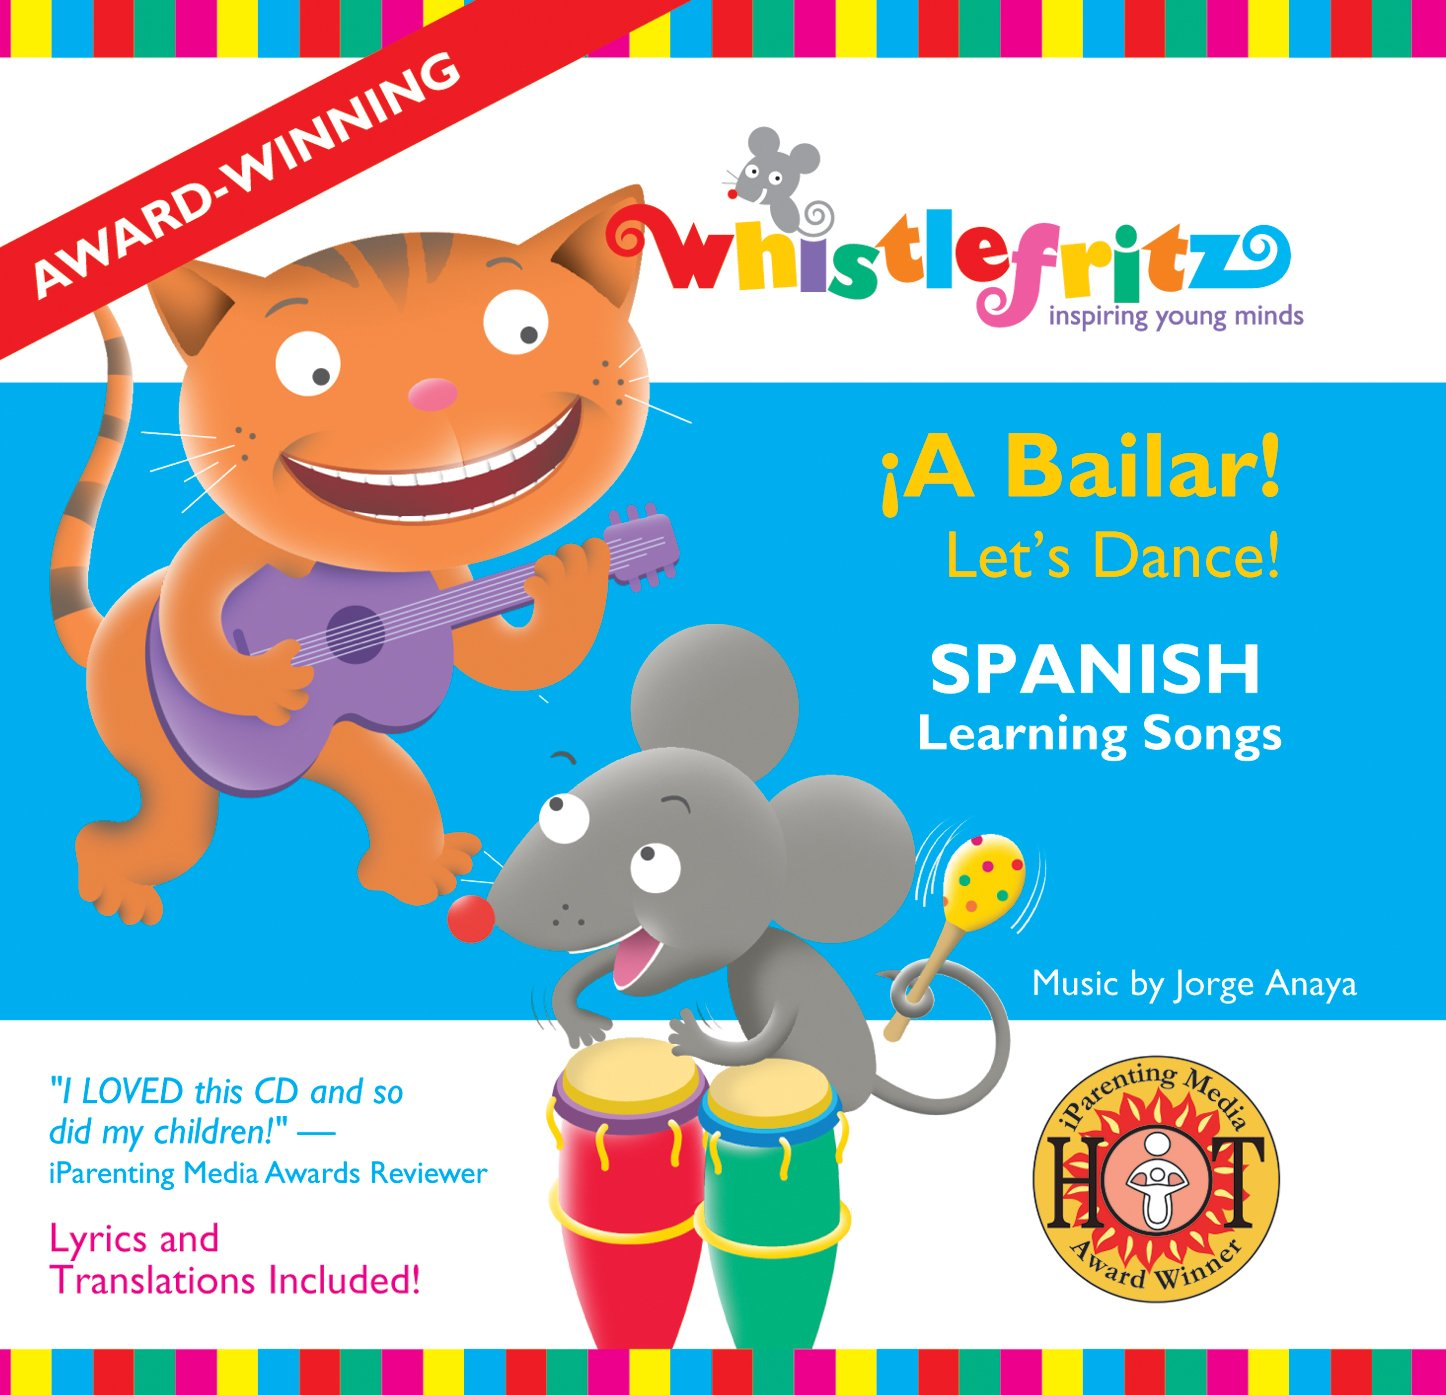 Spanish for Kids: A Bailar! by CD Baby (distributor)